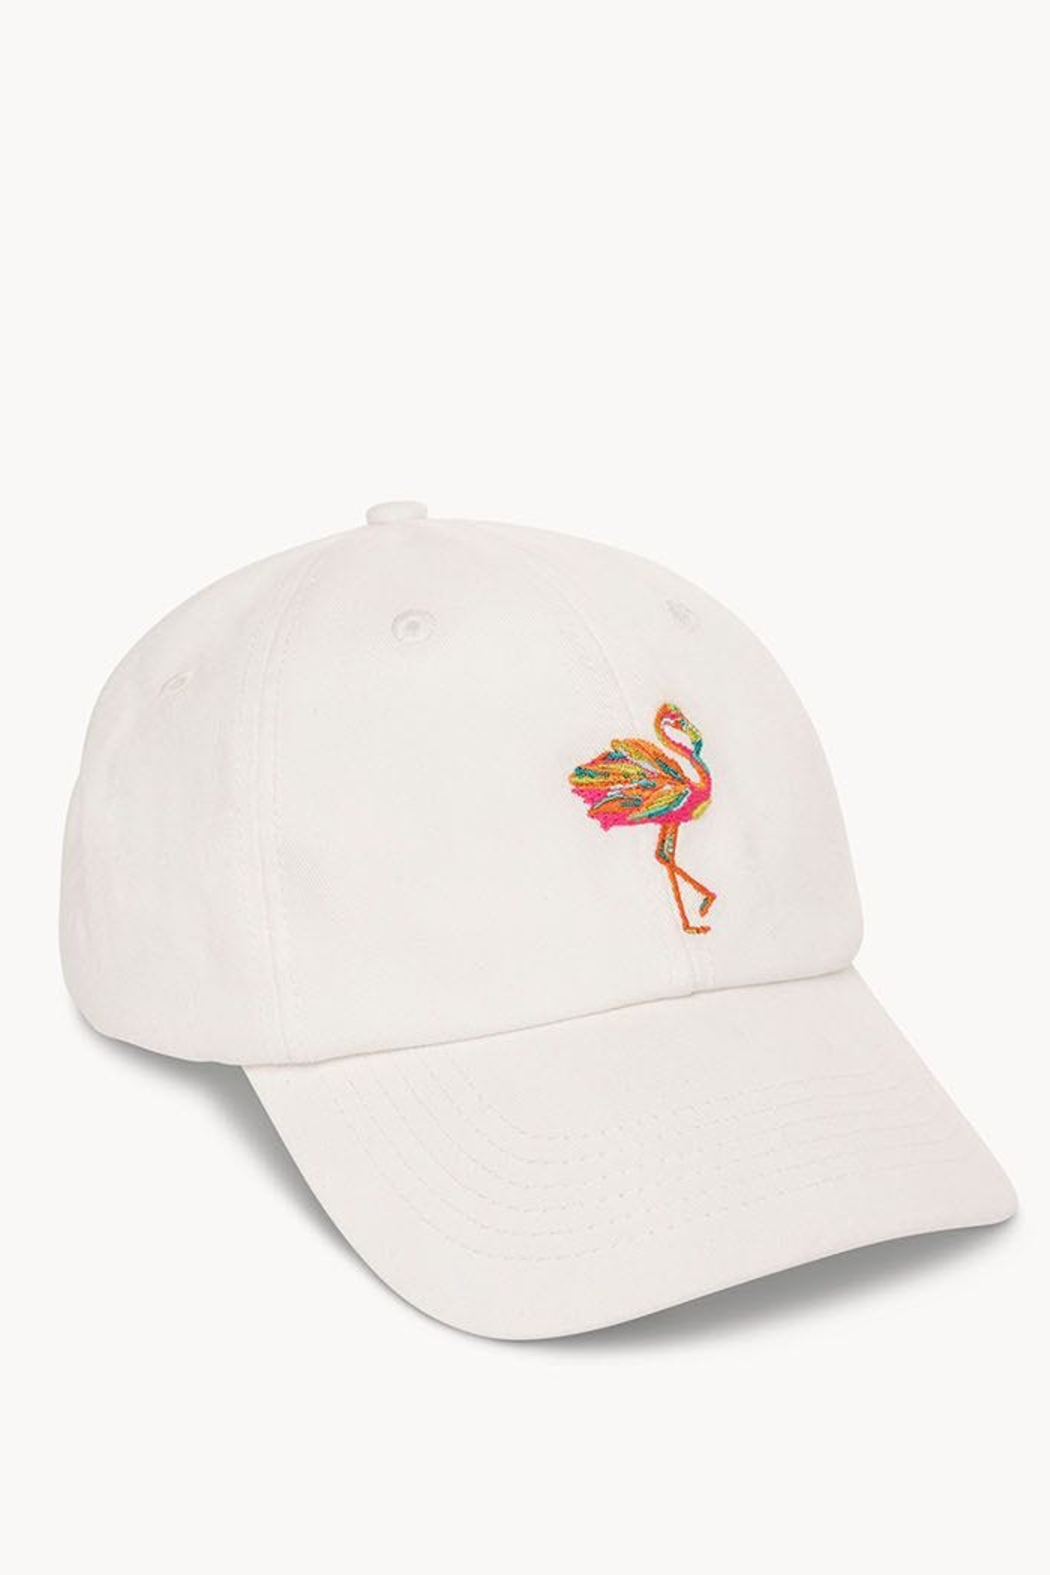 Spartina 449 Spartina Flamingo or Pineapple Hat - Main Image